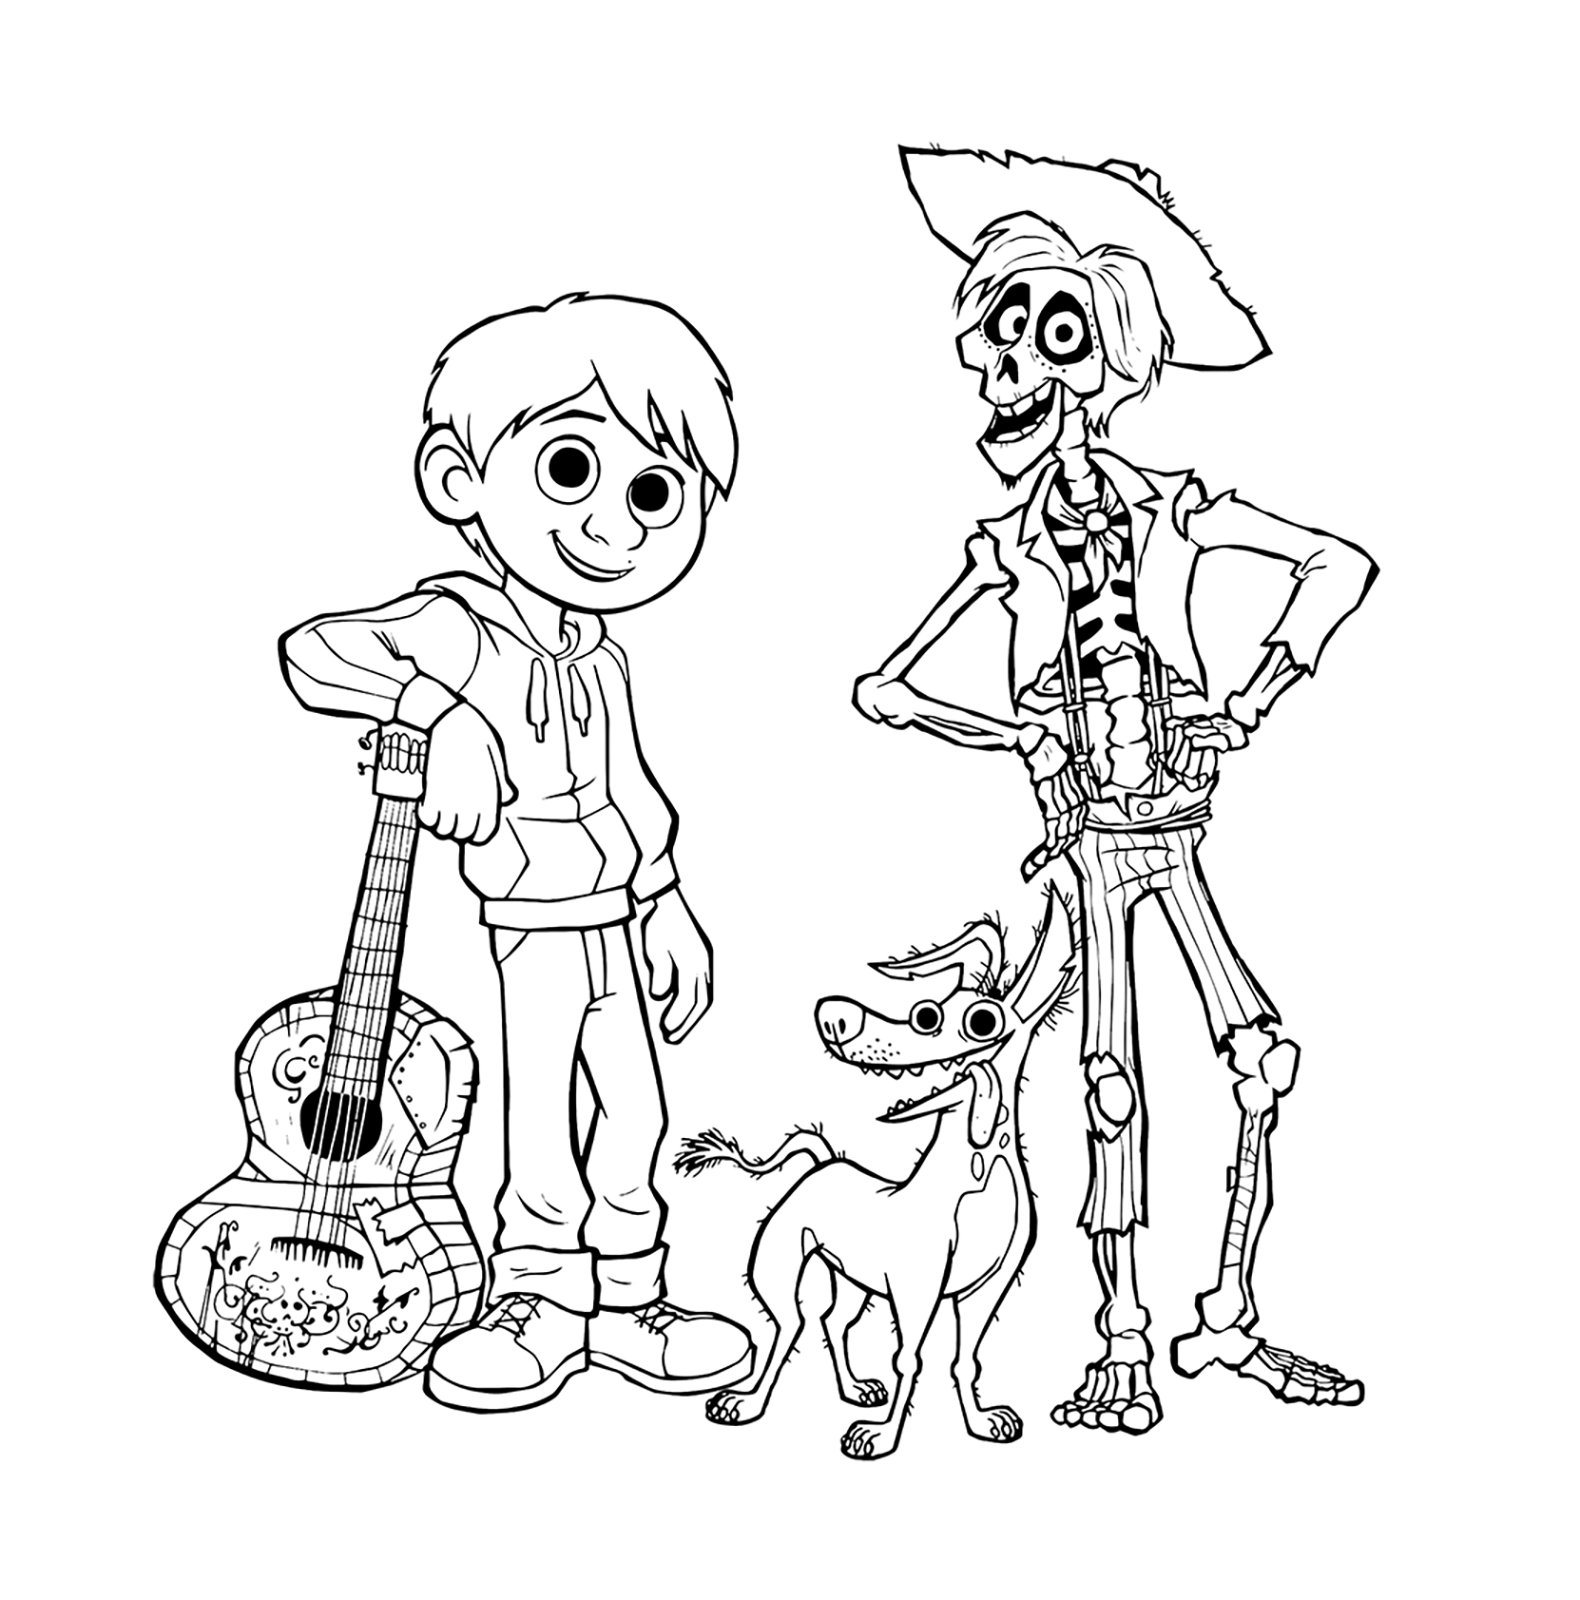 Coco coloring pages Have fun to print and color Coco